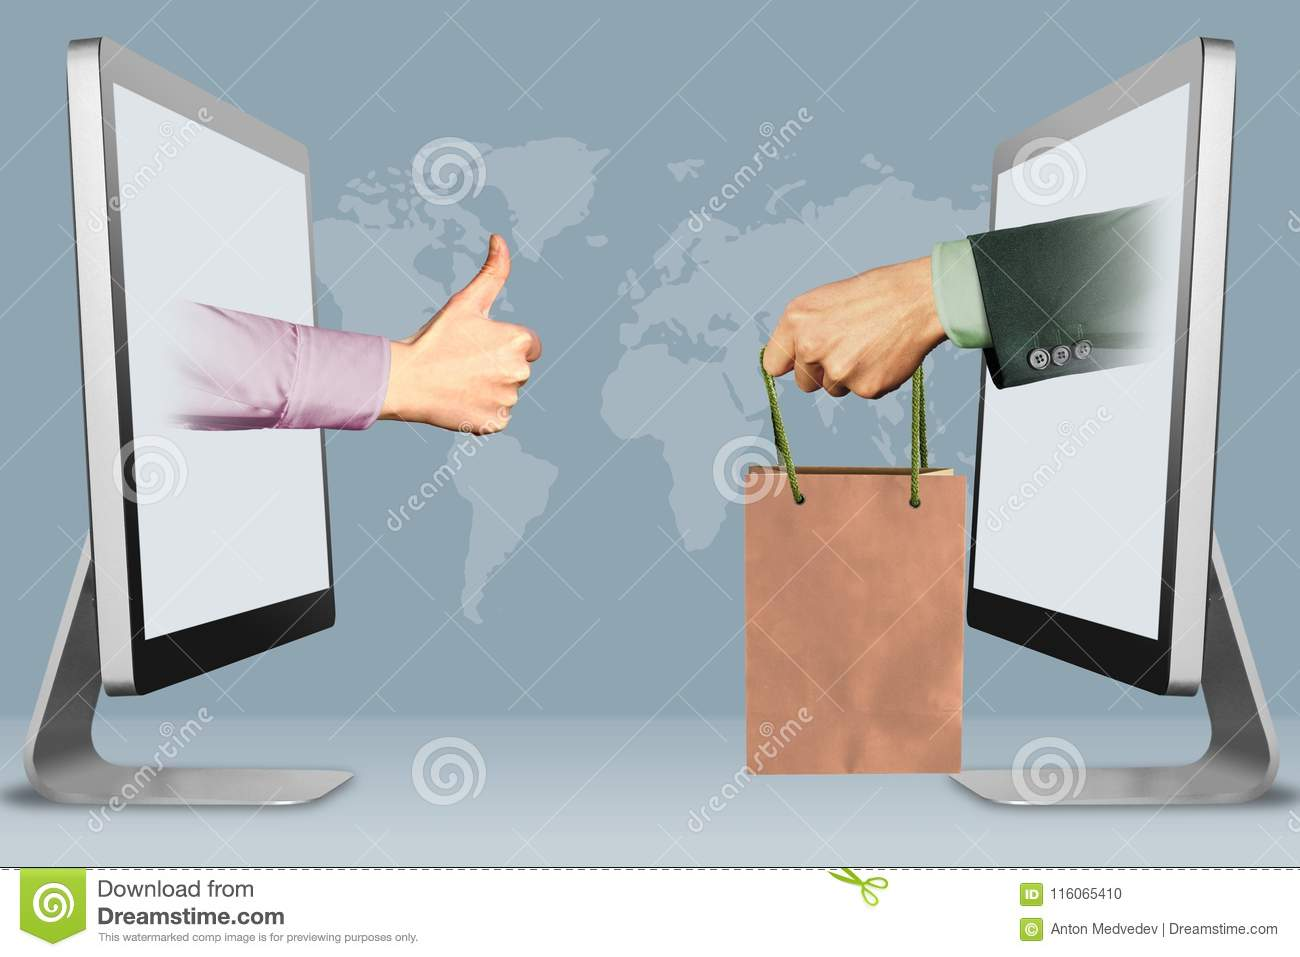 Online Concept, Two Hands From Laptops  Thumbs Up, Like And